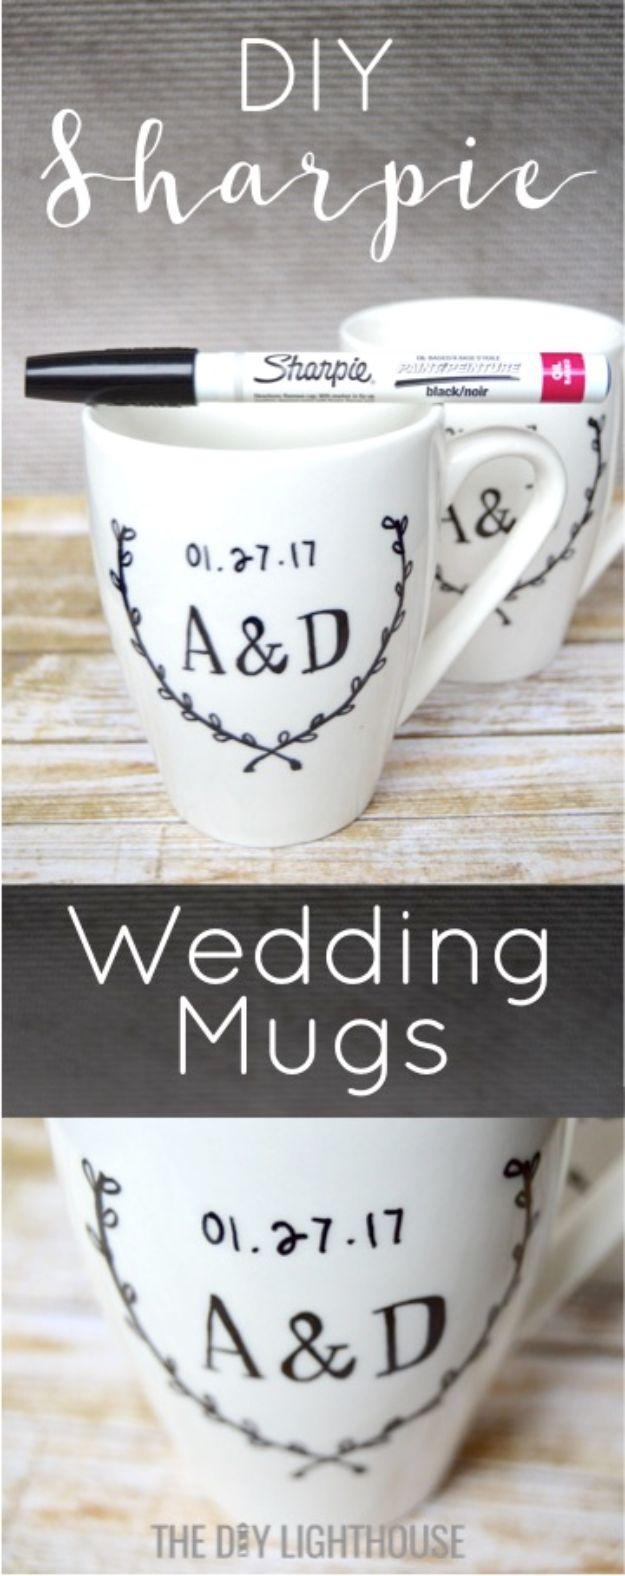 Cheap Wedding Gift Ideas - DIY Sharpie Wedding Mugs - DIY Wedding Gifts You Can Make On A Budget - Quick and Easy Ideas for Handmade Presents for the Couple Getting Married - Inexpensive Things To Make for Bride and Groom - DIY Home Decor, Wall Art, Glassware, Furniture, Tableware, Place Settings, Cake and Cookie Plates and Glasses http://diyjoy.com/cheap-diy-wedding-gift-ideas